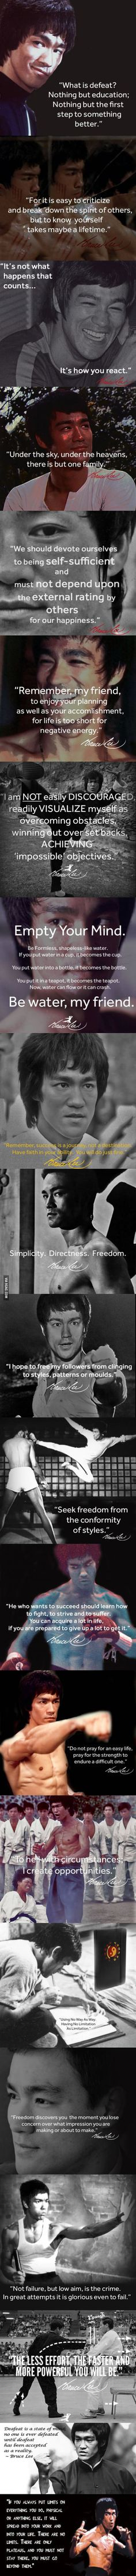 What is defeat? Very inspirational  #brucelee #bruceleequotes #kurttasche